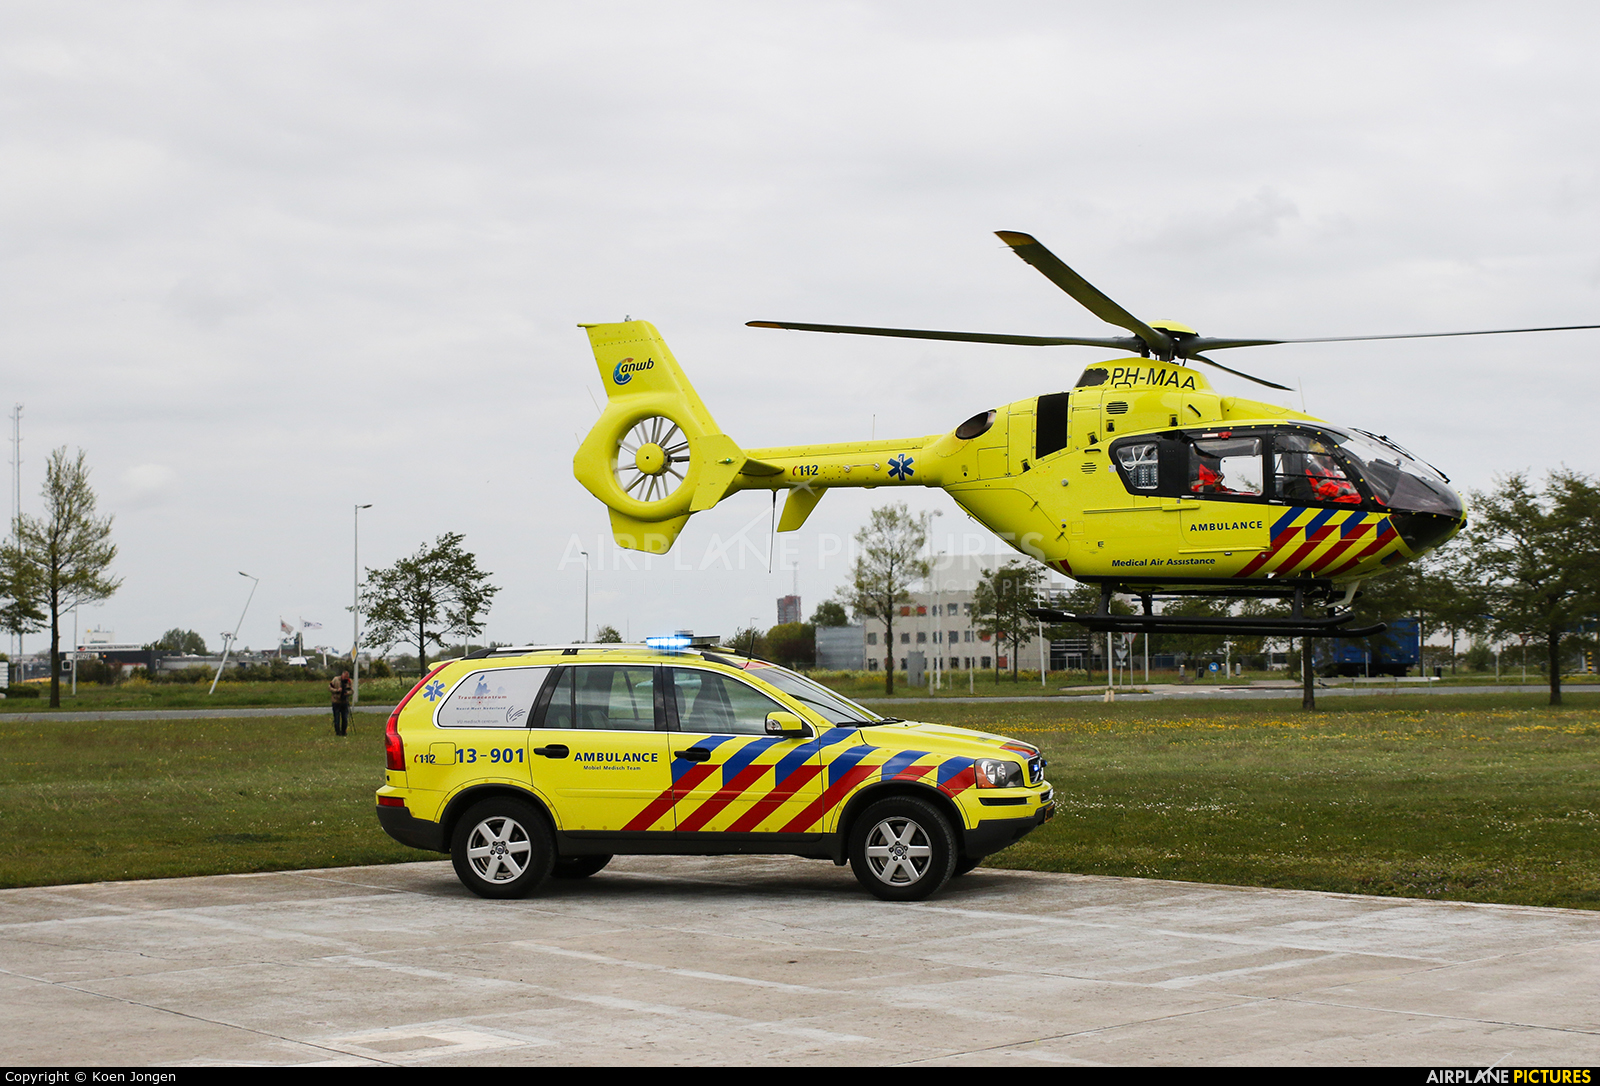 ANWB Medical Air Assistance PH-MAA aircraft at Amsterdam Heliport